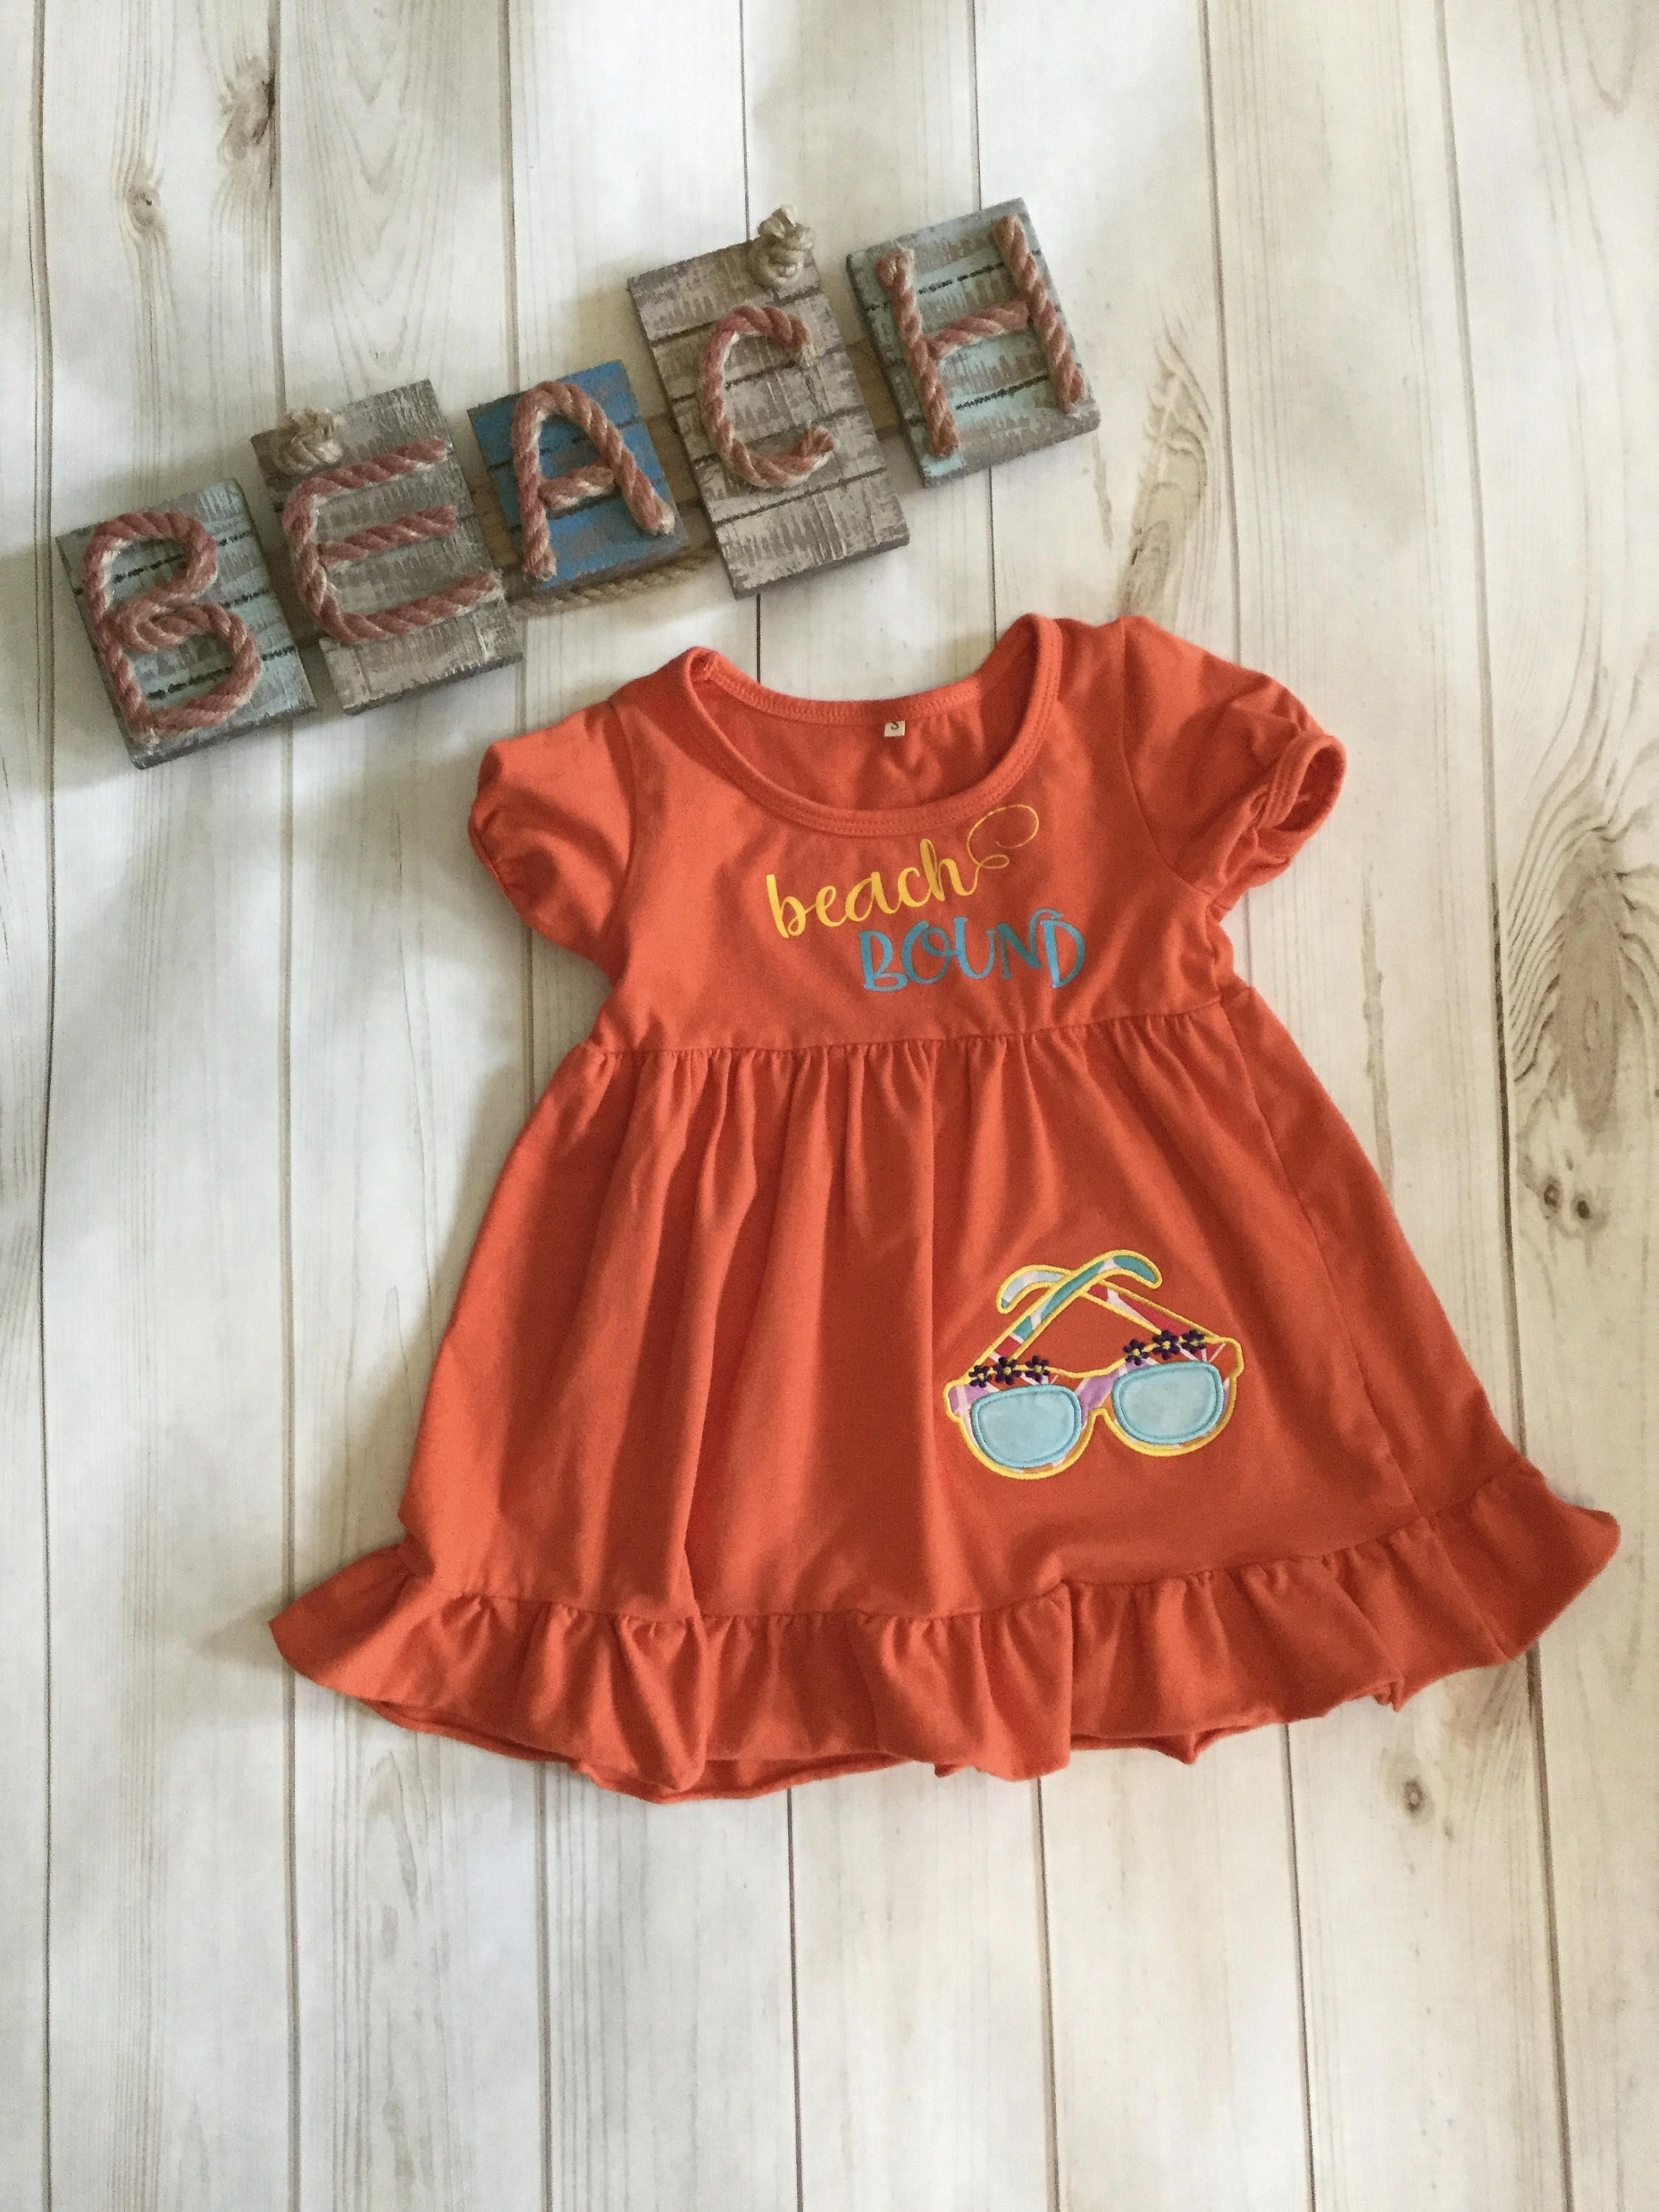 Free Shipping Clearance Sale Beach Bound Summer Dress Etsy Childrens Clothes Toddler Dress Summer Dresses [ 3000 x 2250 Pixel ]